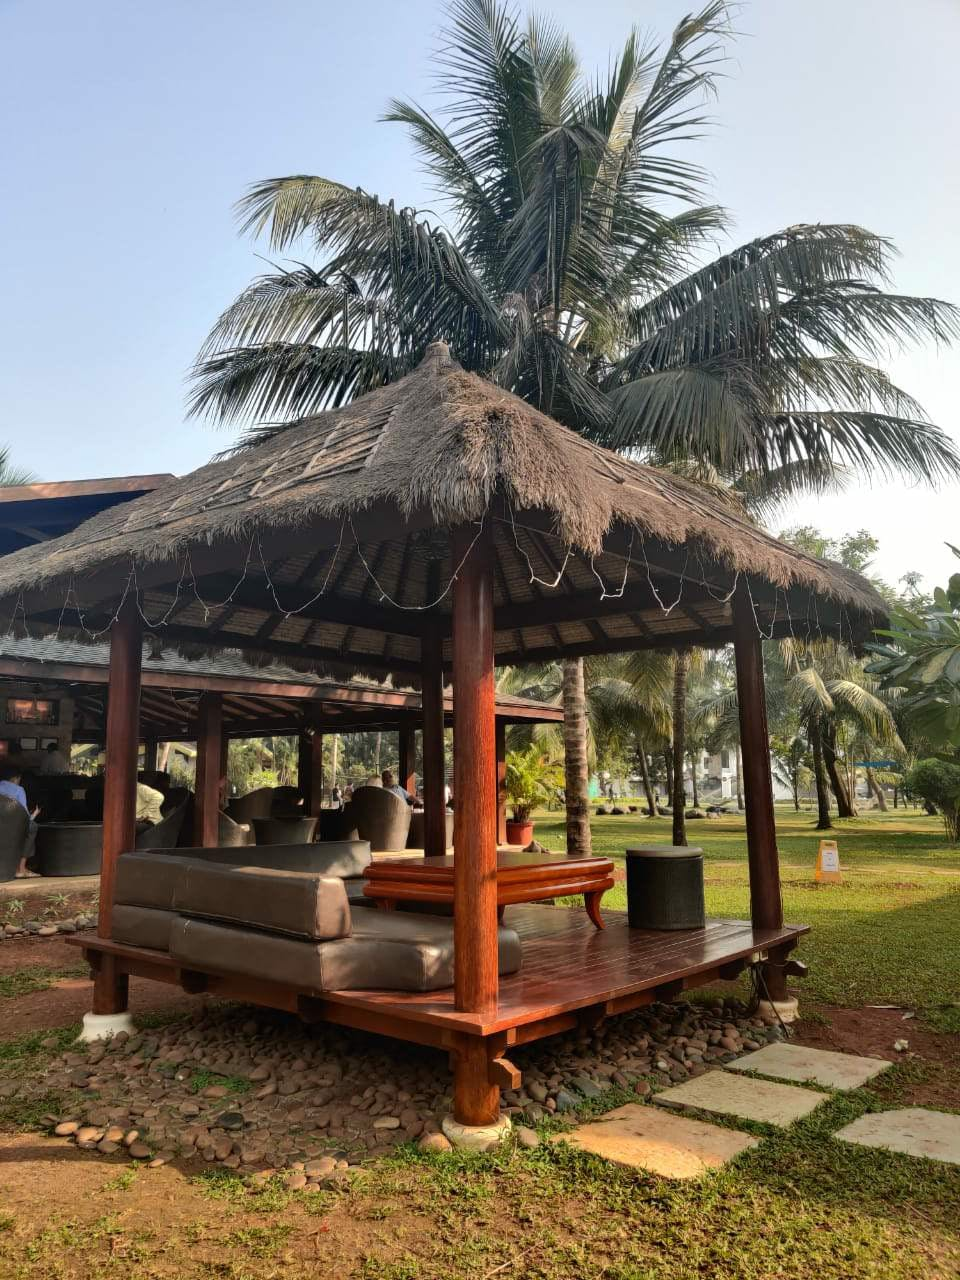 Tree,Gazebo,Palm tree,Arecales,Plant,Roof,Building,Pavilion,Landscape,Outdoor structure